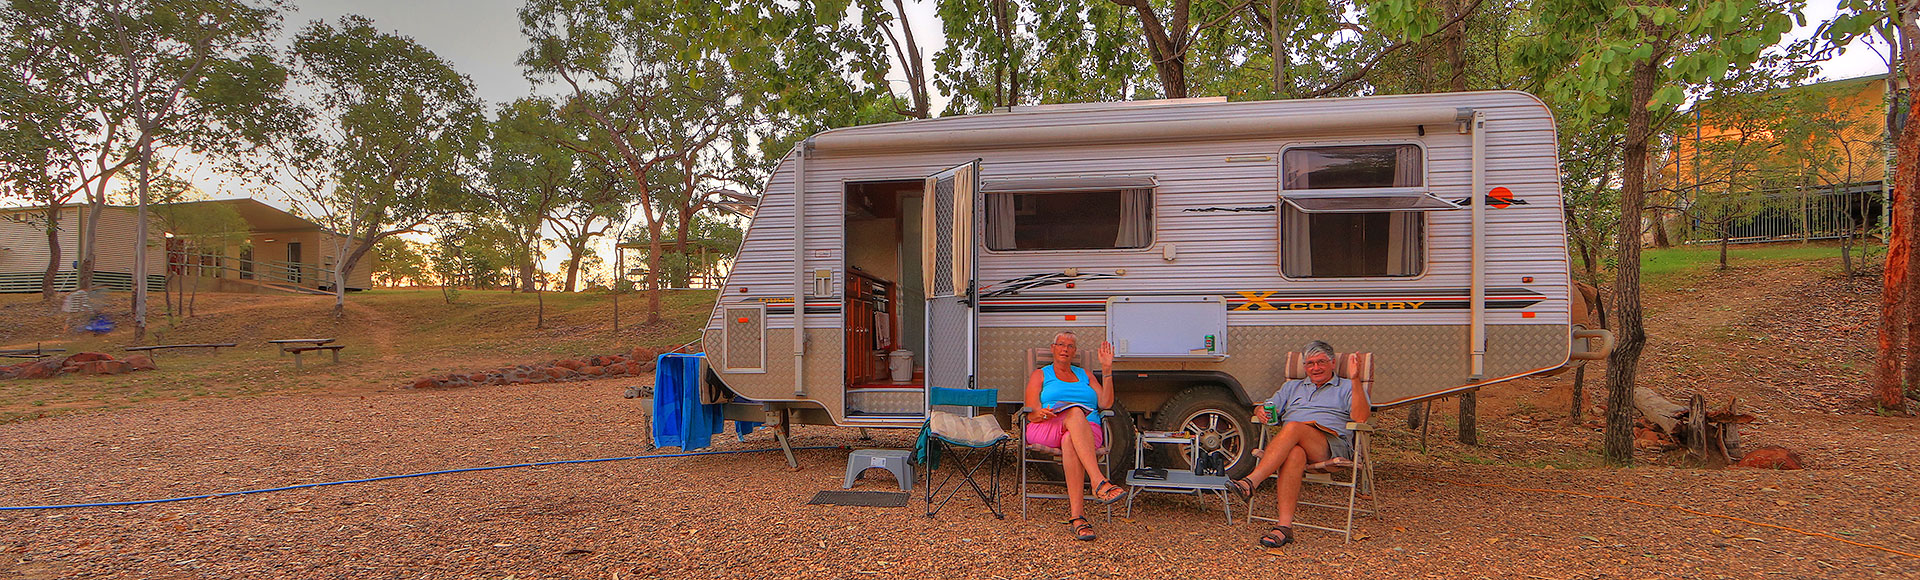 Cobbold Campgrounds